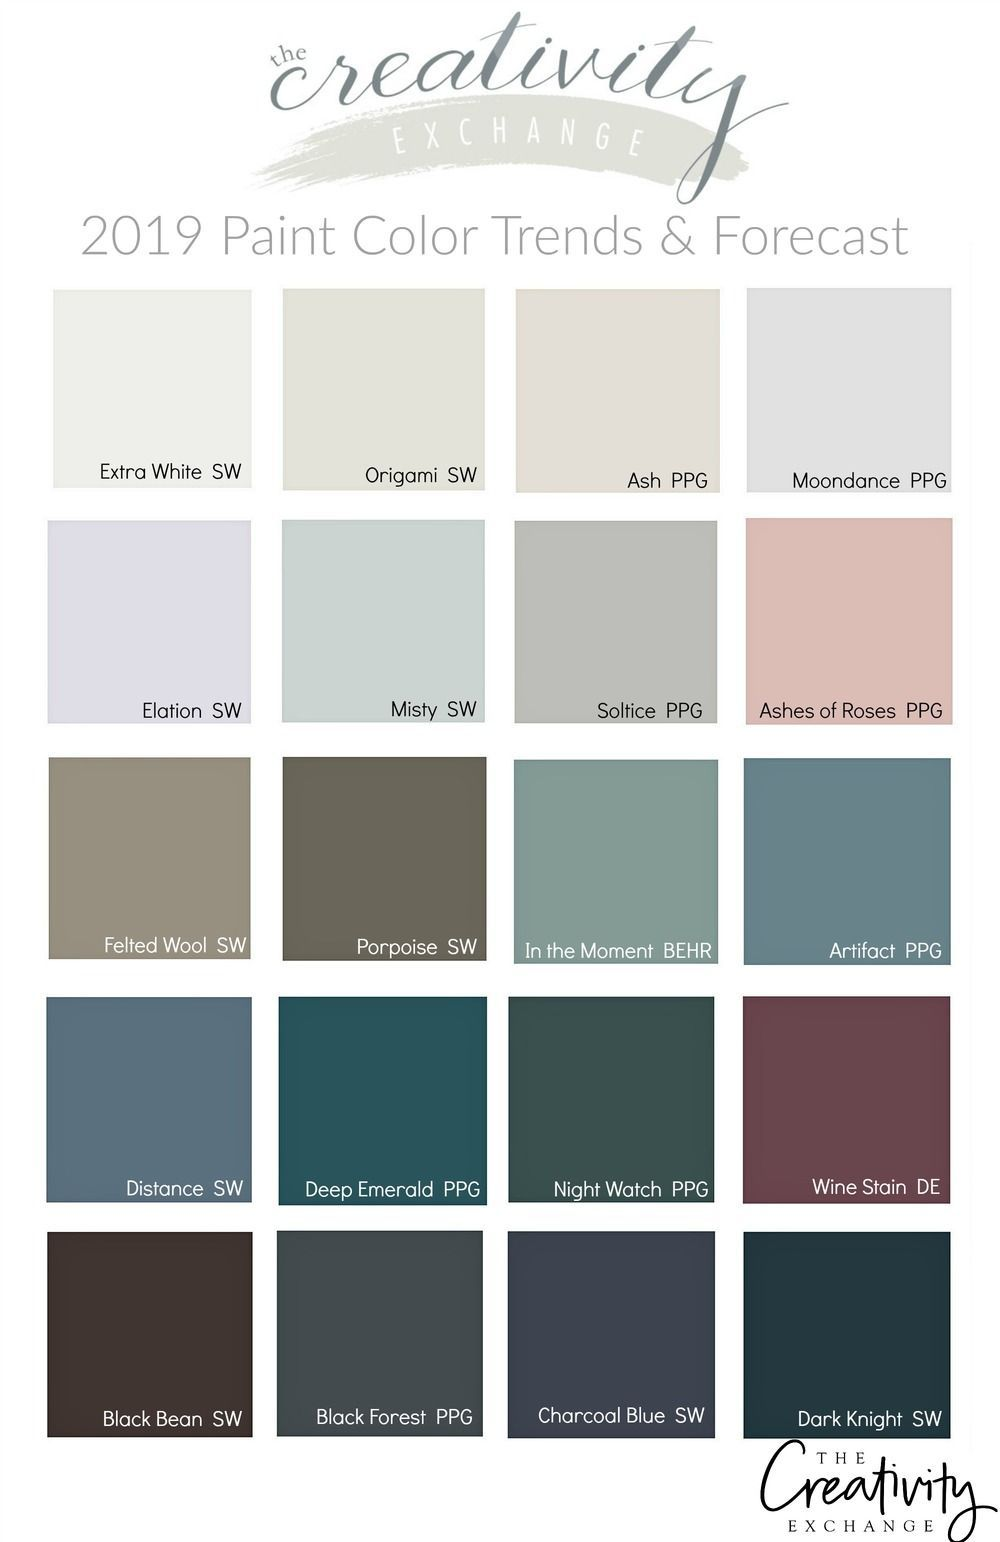 2019 Paint Color Trends and Forecasts images